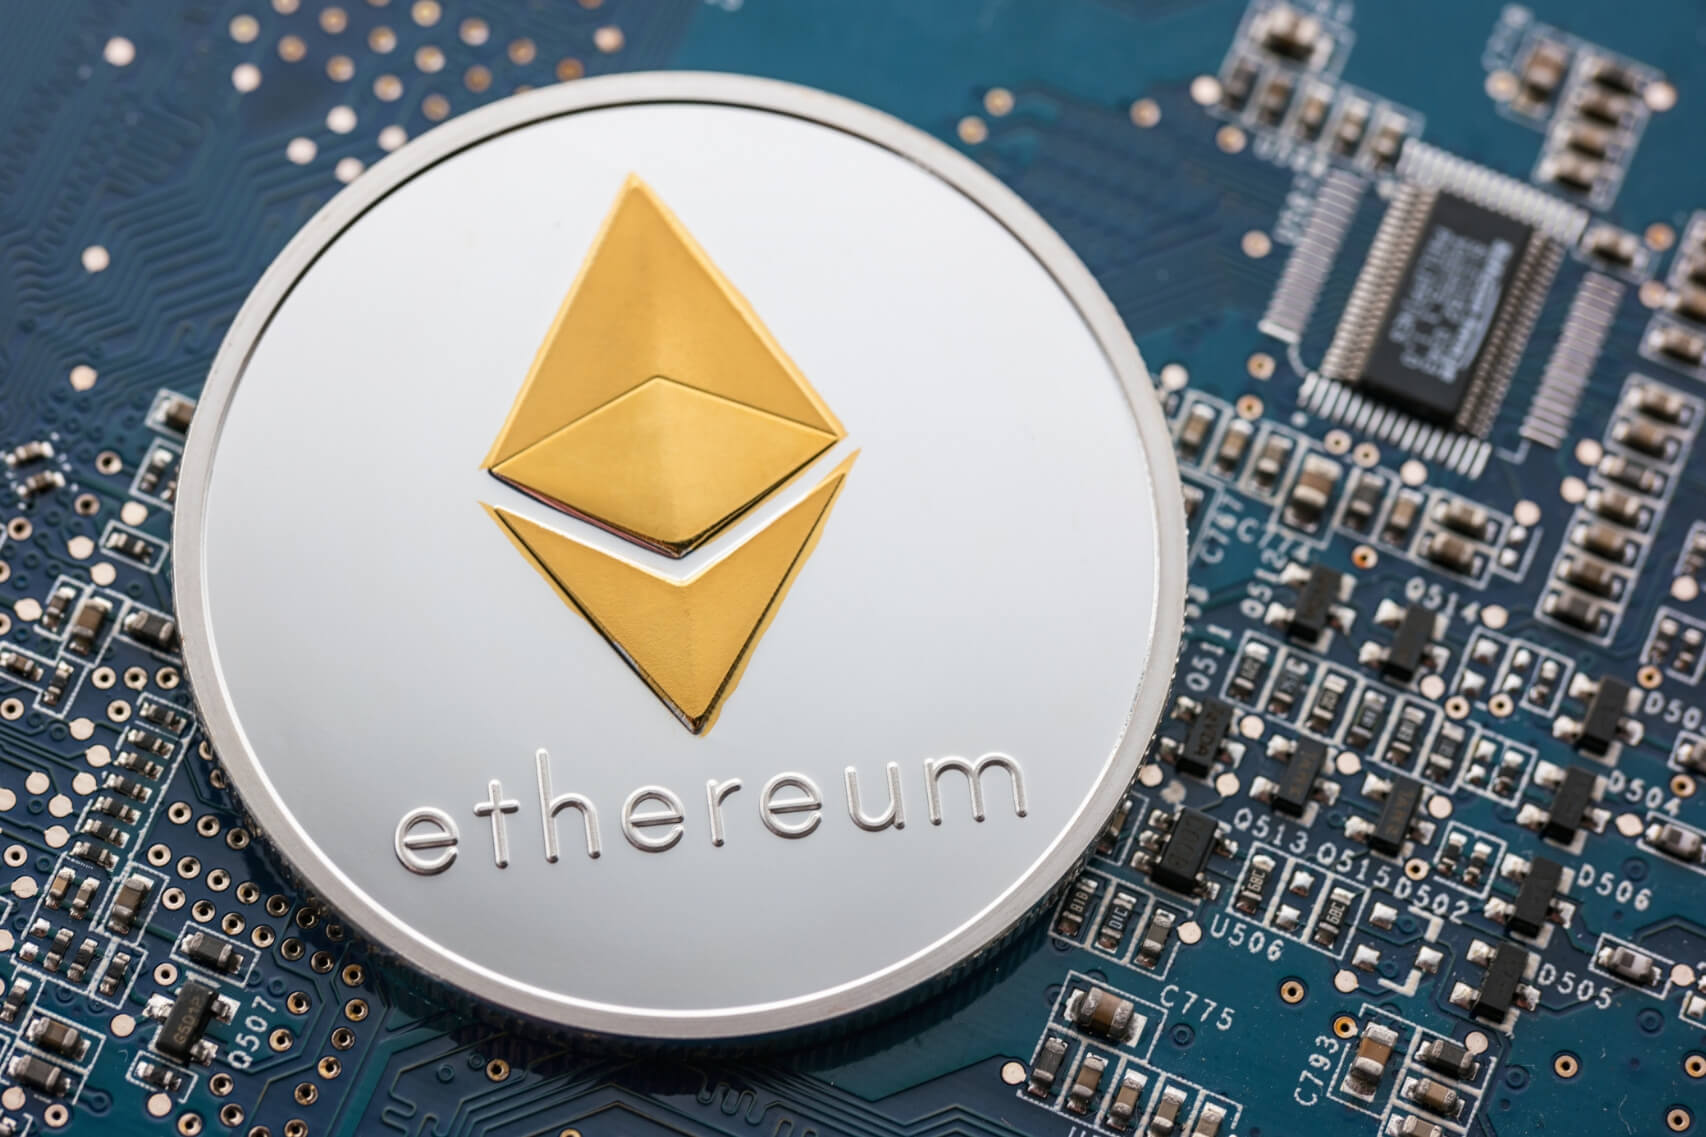 New MetaMask Mobile Wallet Offers Support for Ethereum Dapps